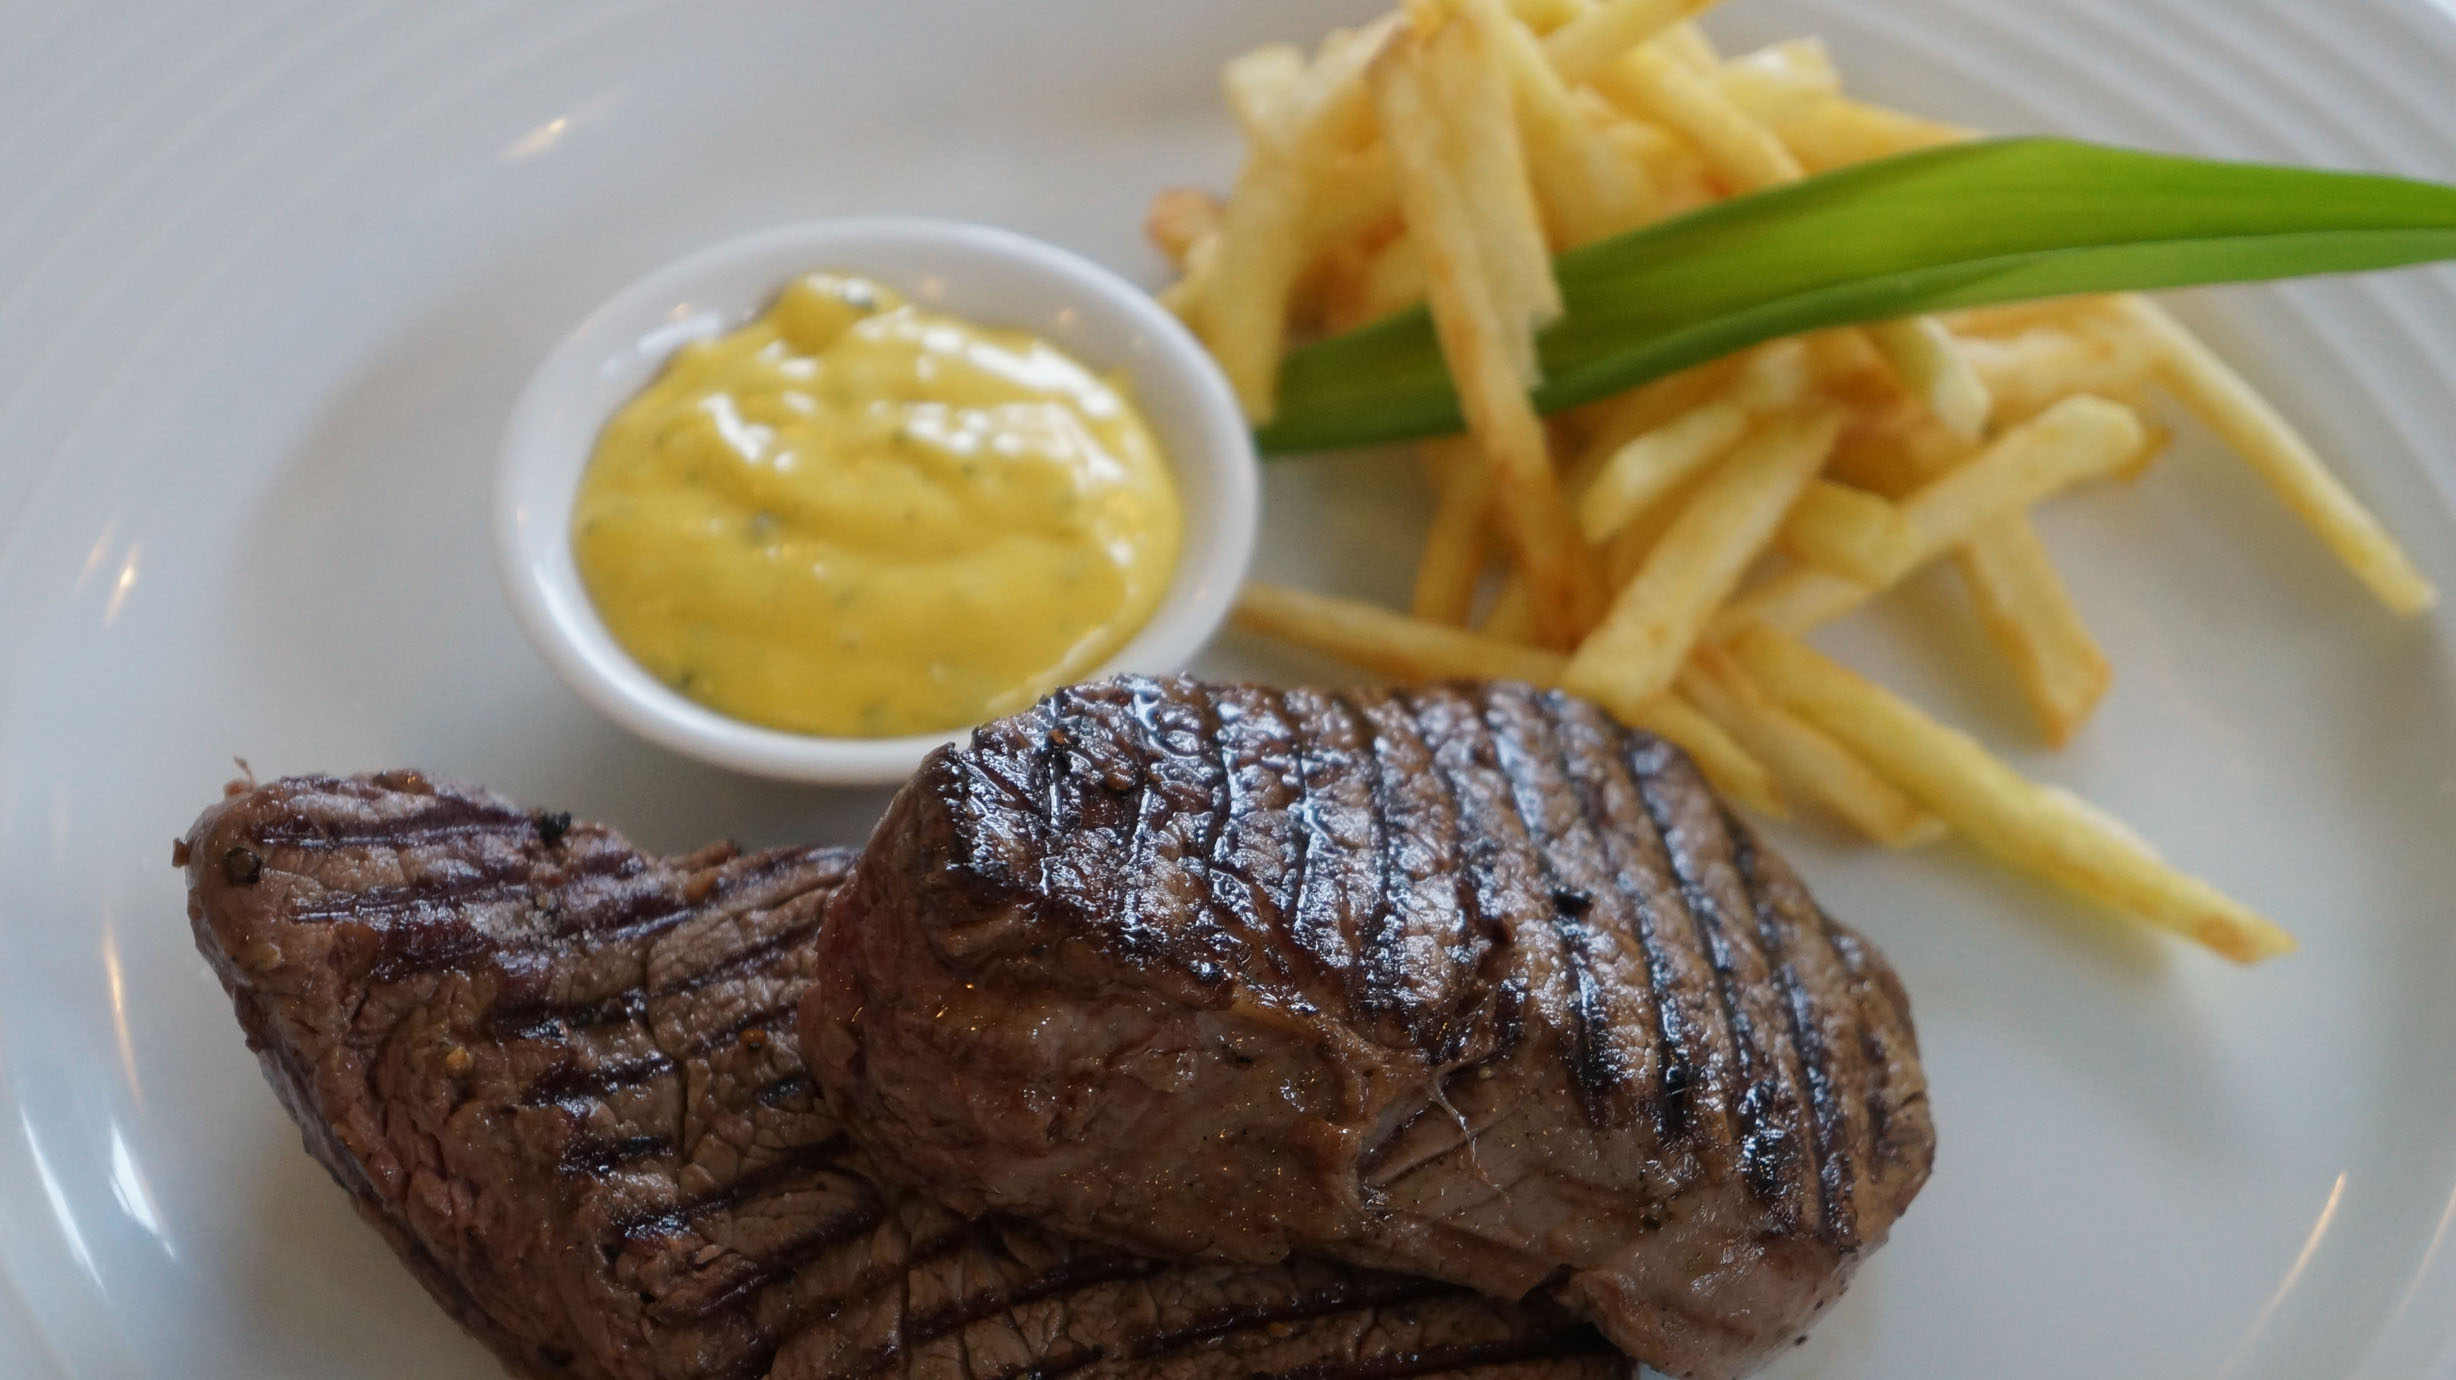 Steak, Chips & Bernaise Sauce